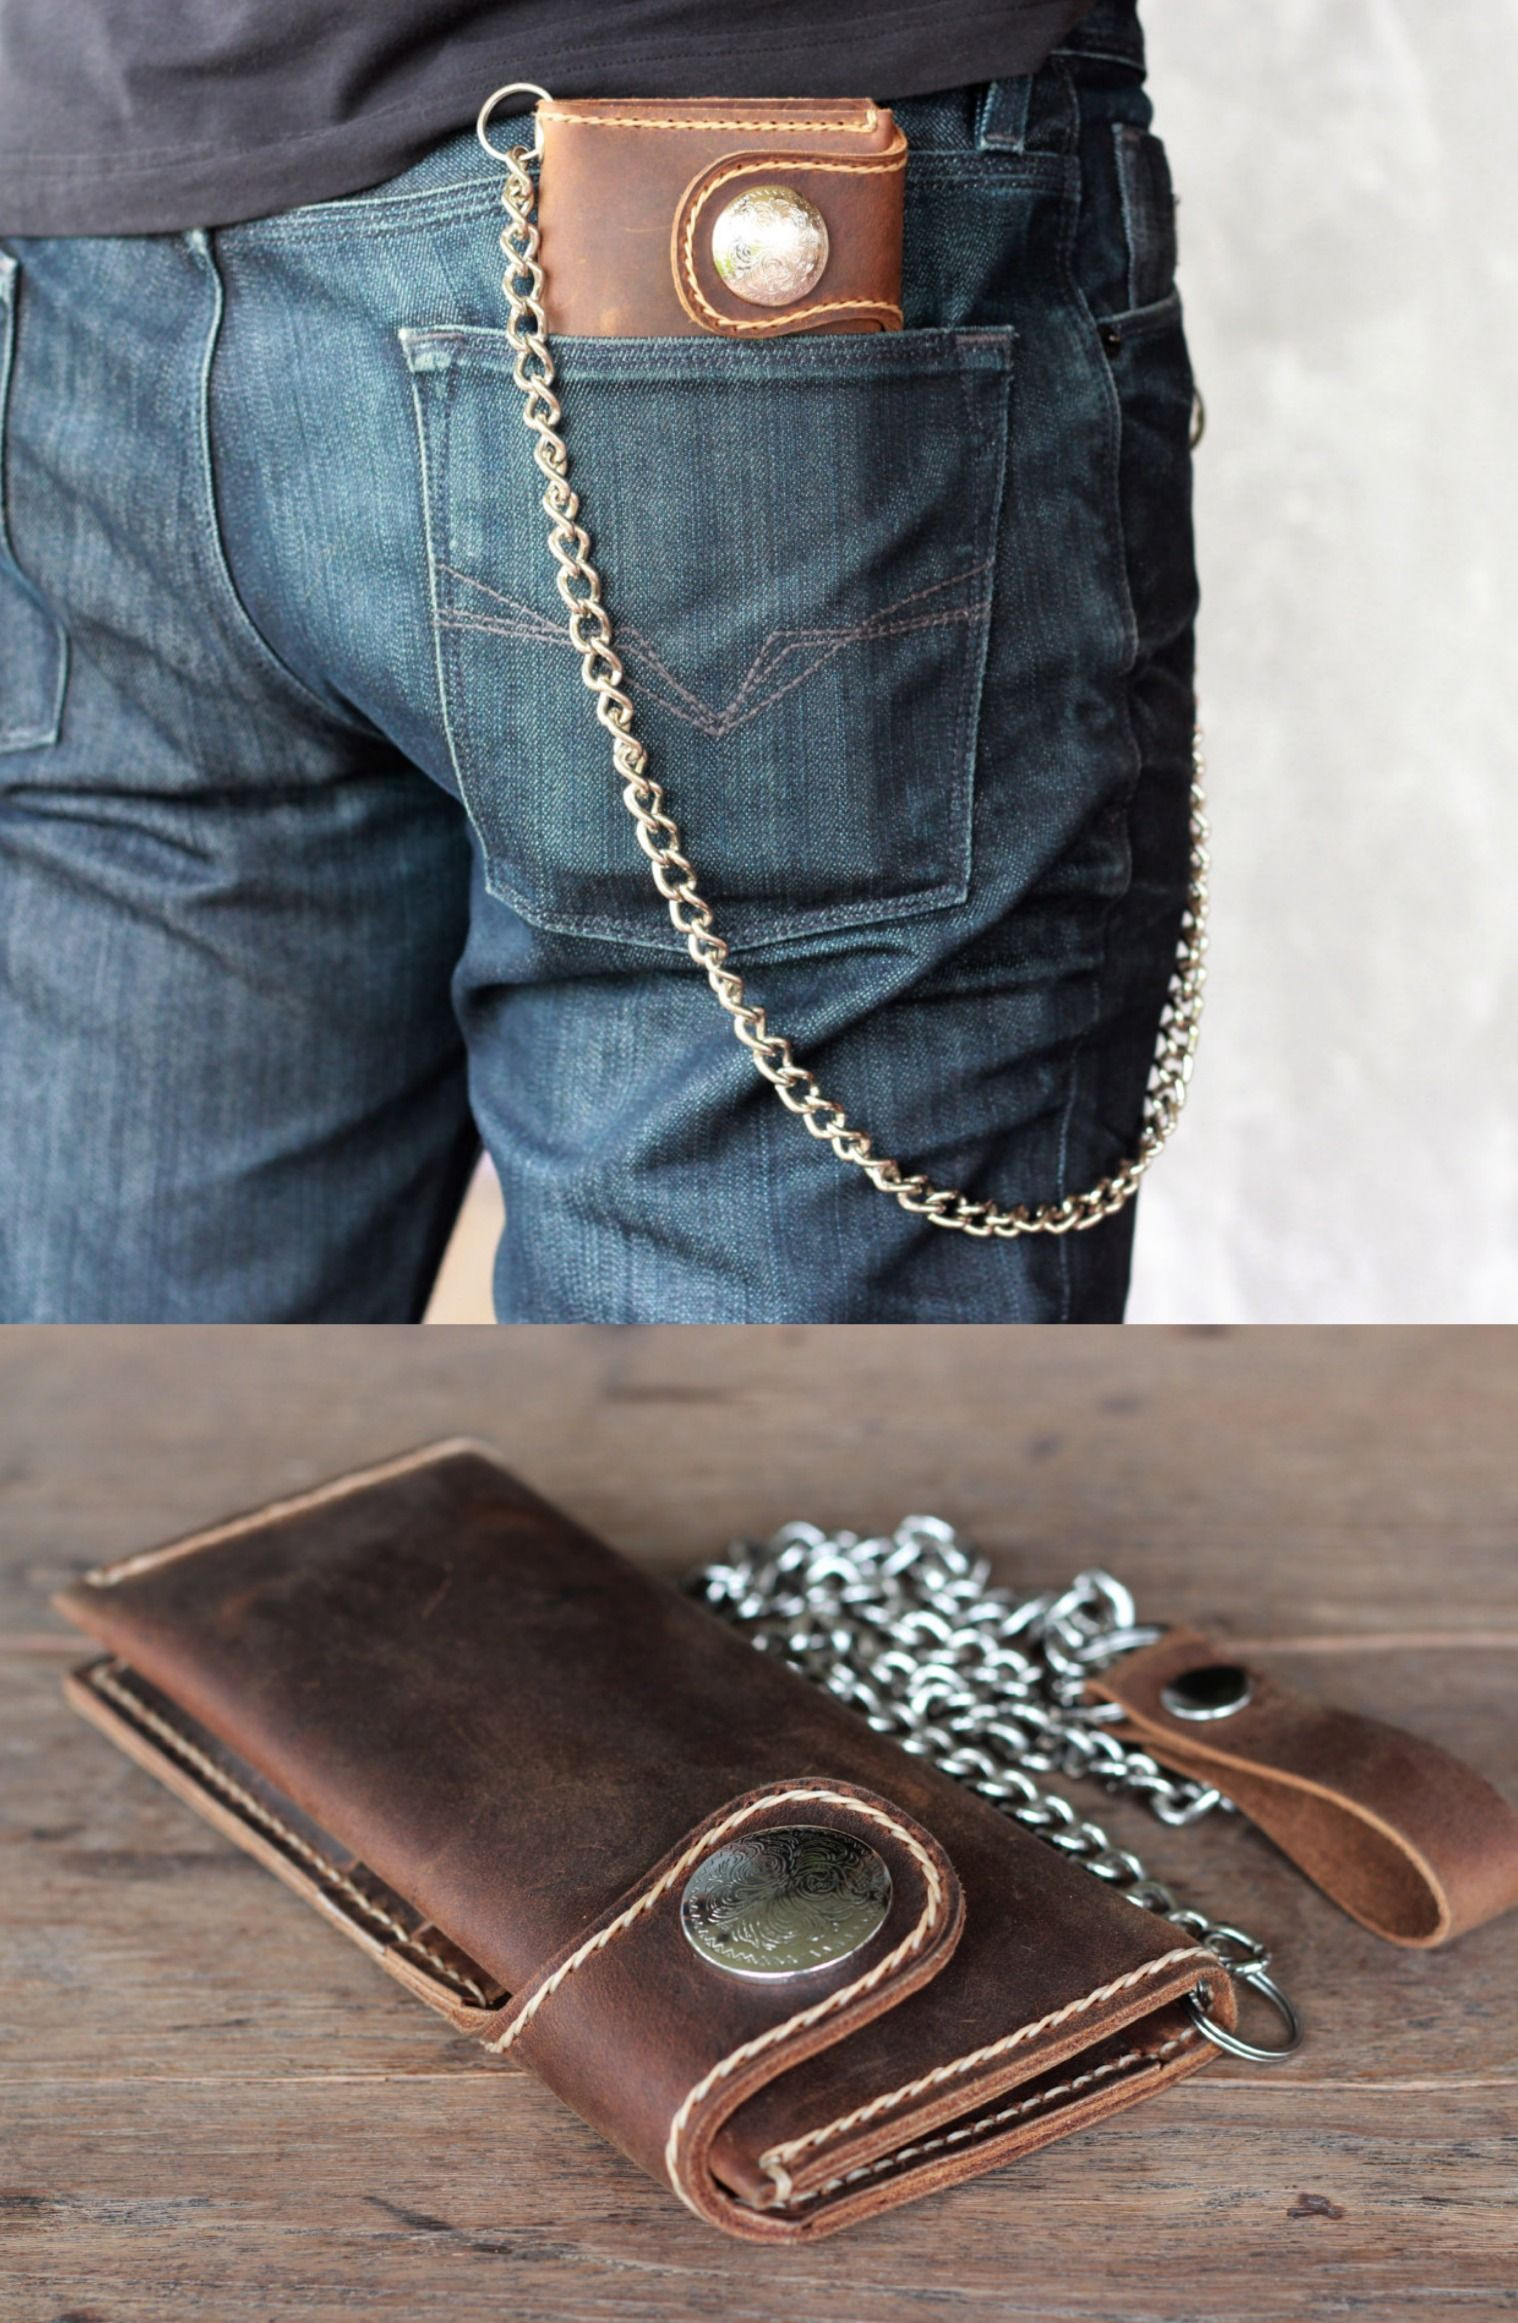 63fcad030a96 This chain wallet is off the hook! Hand made Leather Biker Wallet with a  fashion style. The perfect gift to yourself, or for someone for Christmas.